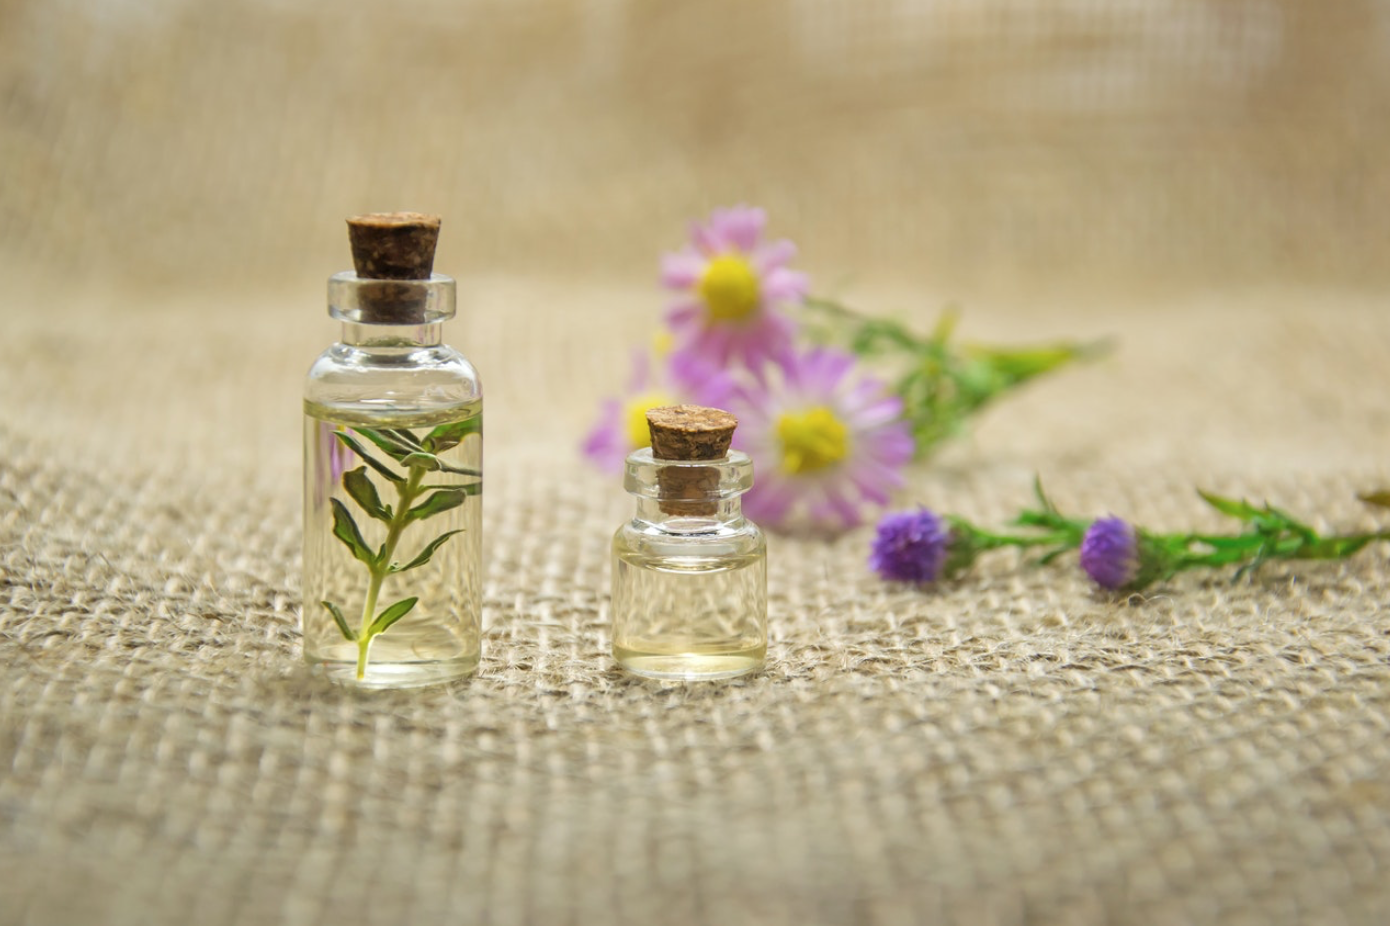 Glass bottles filled with oil and plants; image by Mareefe, via Pexels.com.